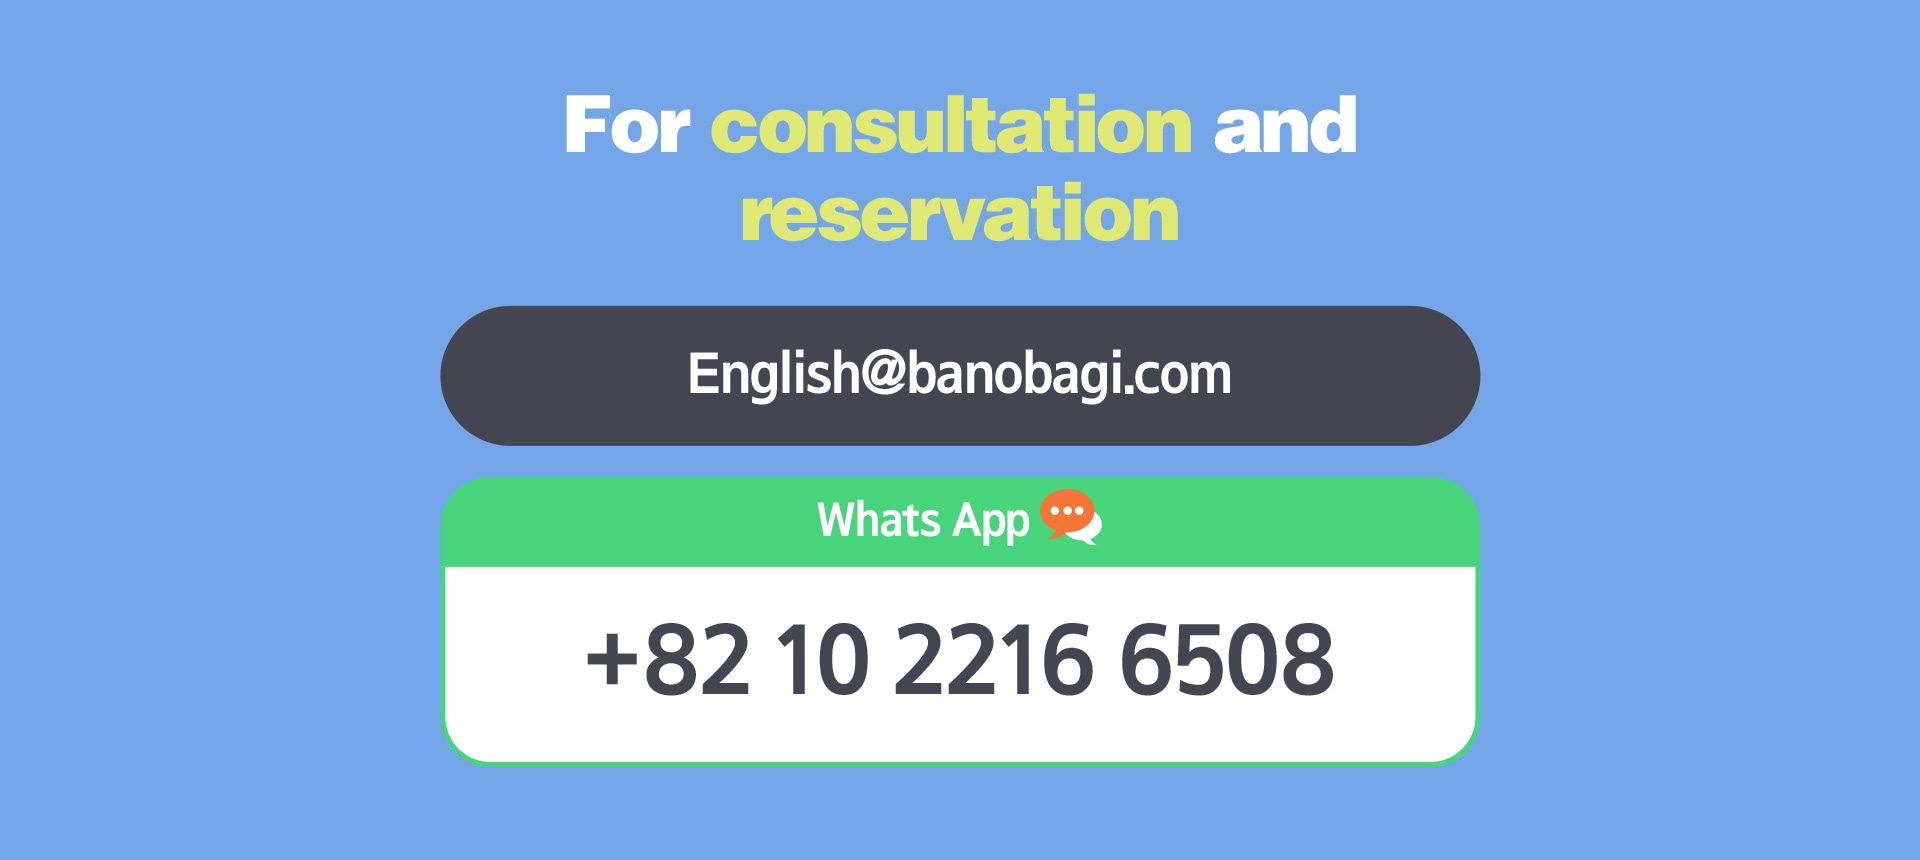 For consultation and reservation